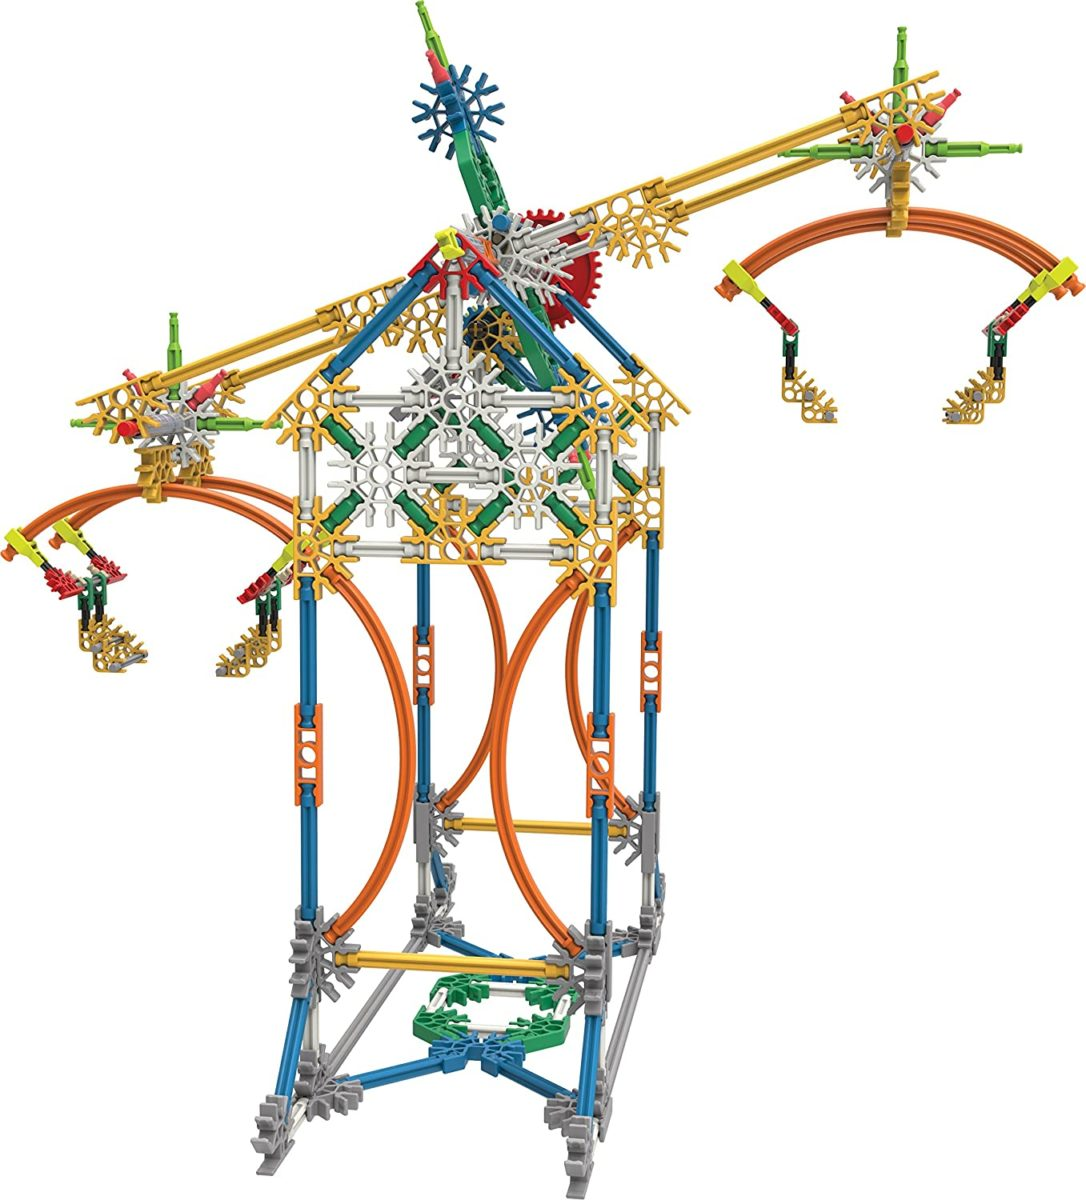 K'NEX Education STEM Explorations Swing Ride Building Set - Top Toys and Gifts for Ten Year Old Boys 2